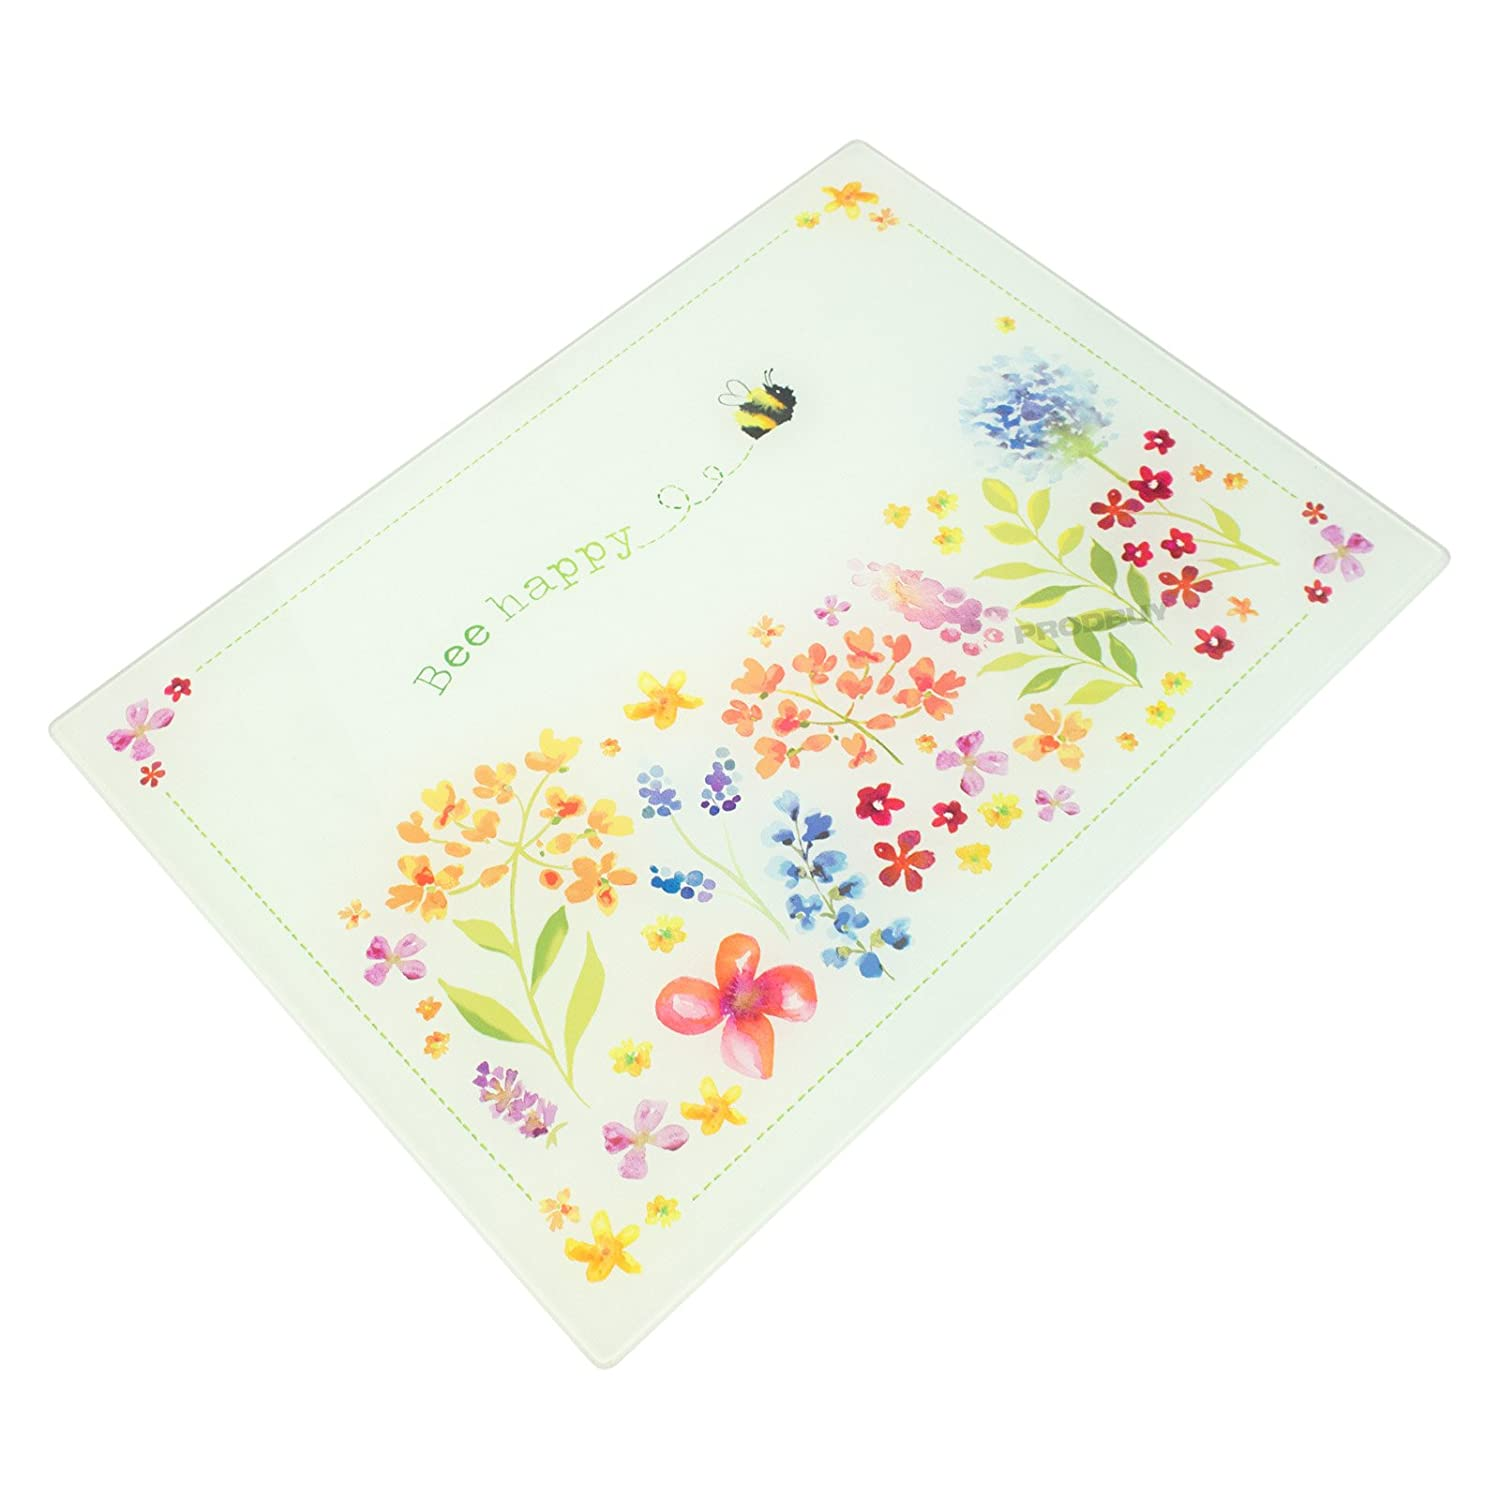 40cm x 30cm Glass Worktop Saver - Bee Floral ProdBuy Limited